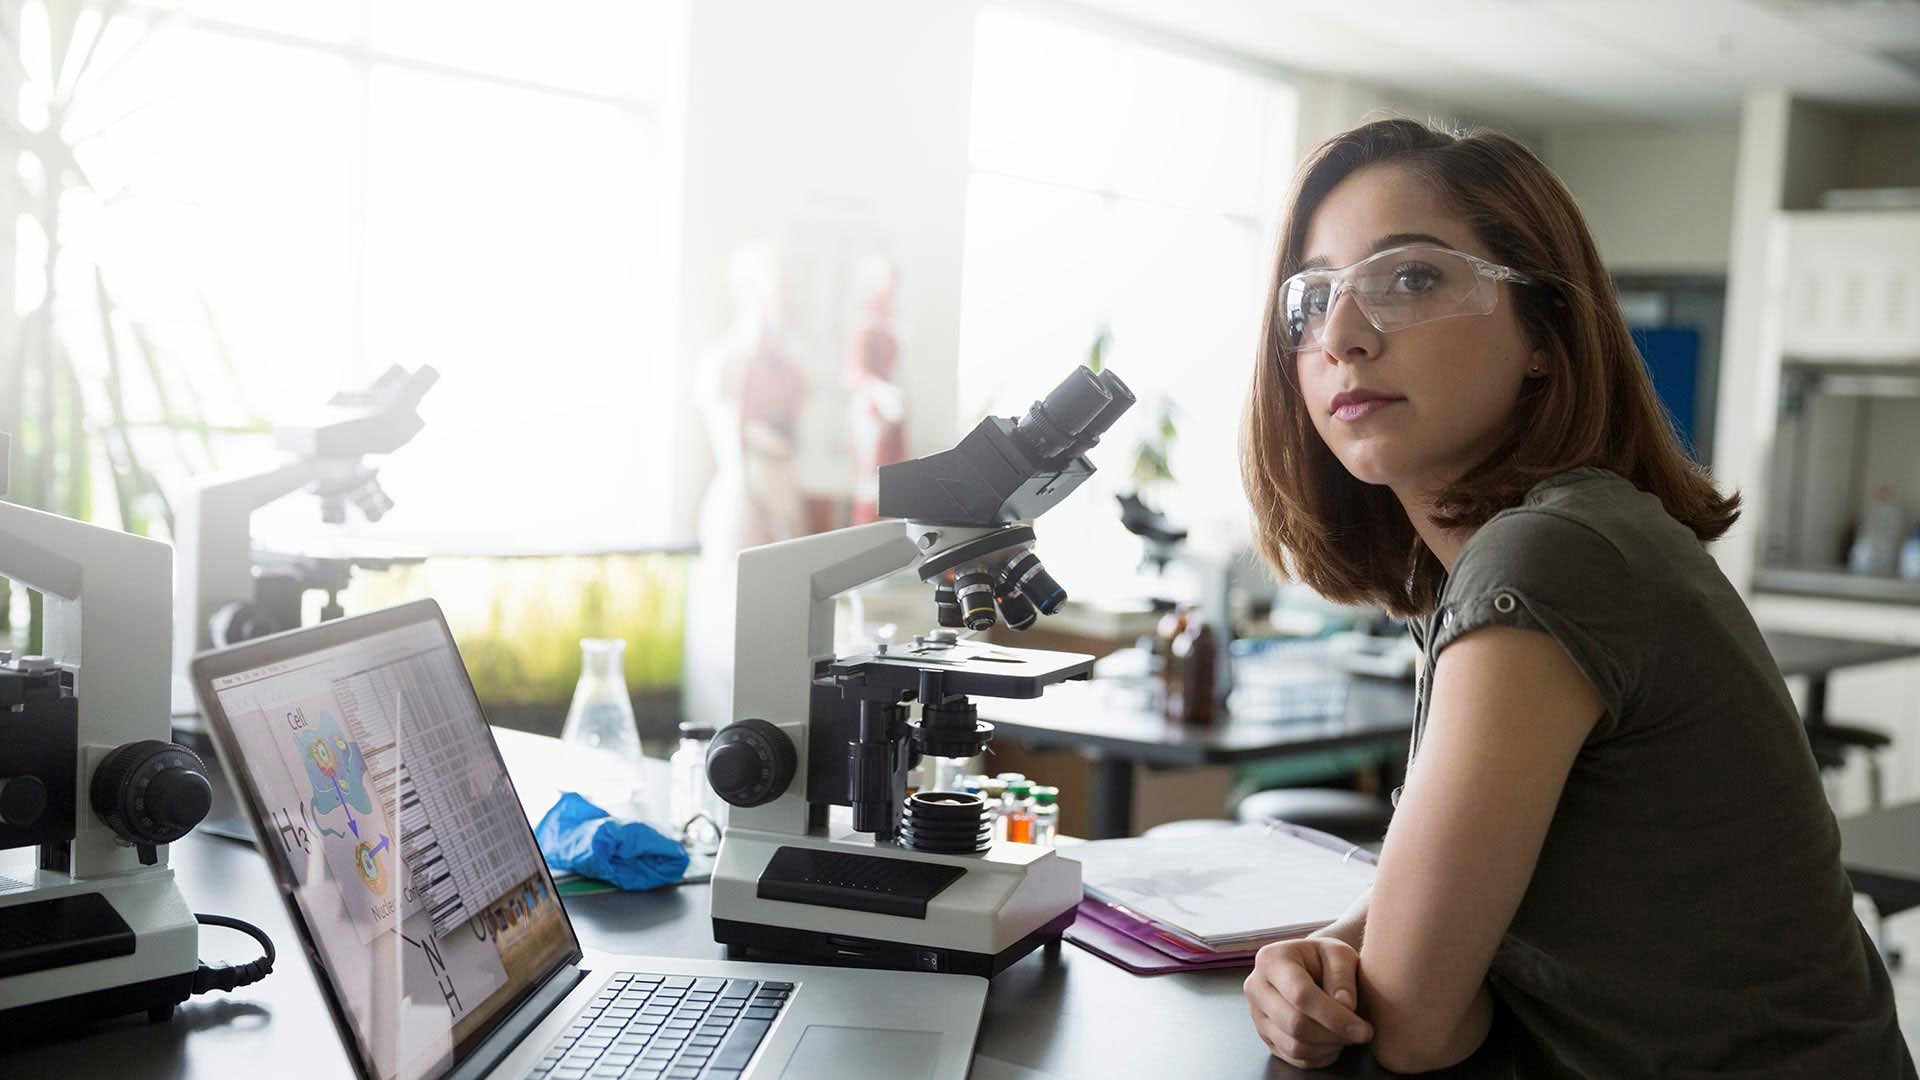 A woman works with a microscope and laptop.